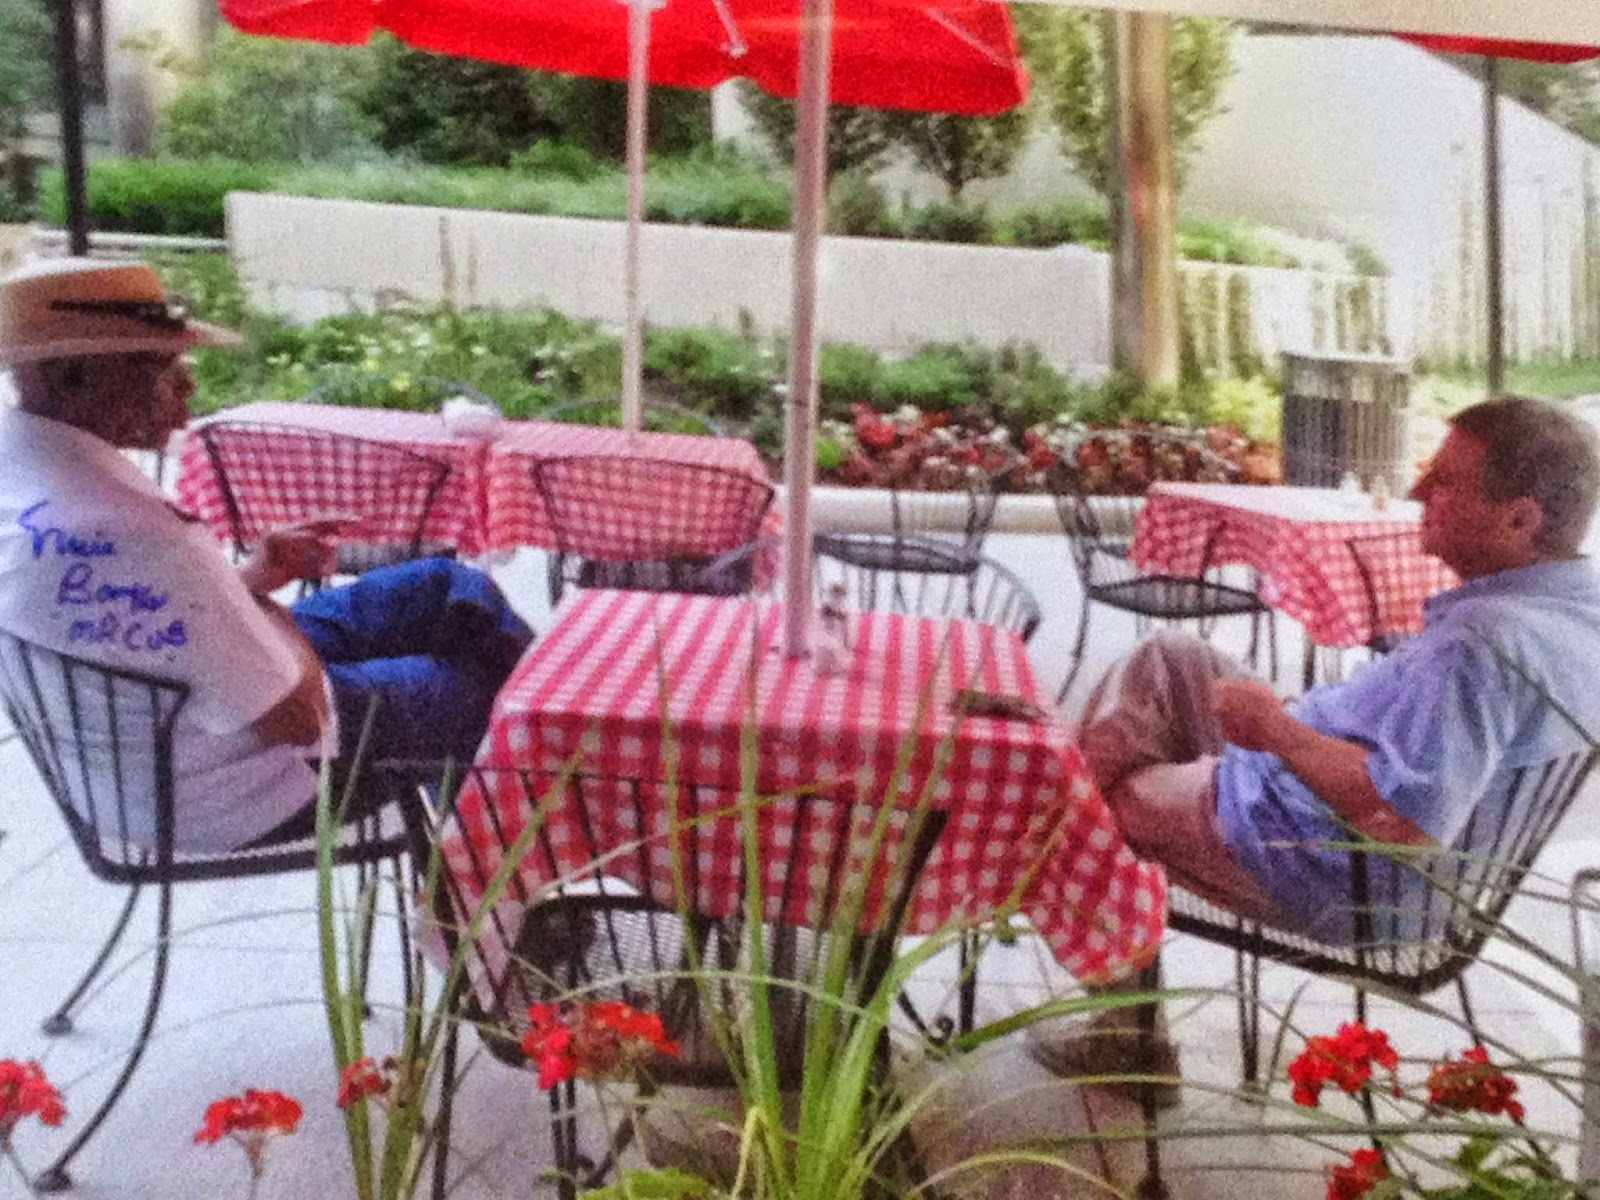 Ernie Banks and Tom Bongiorno on the Terrace